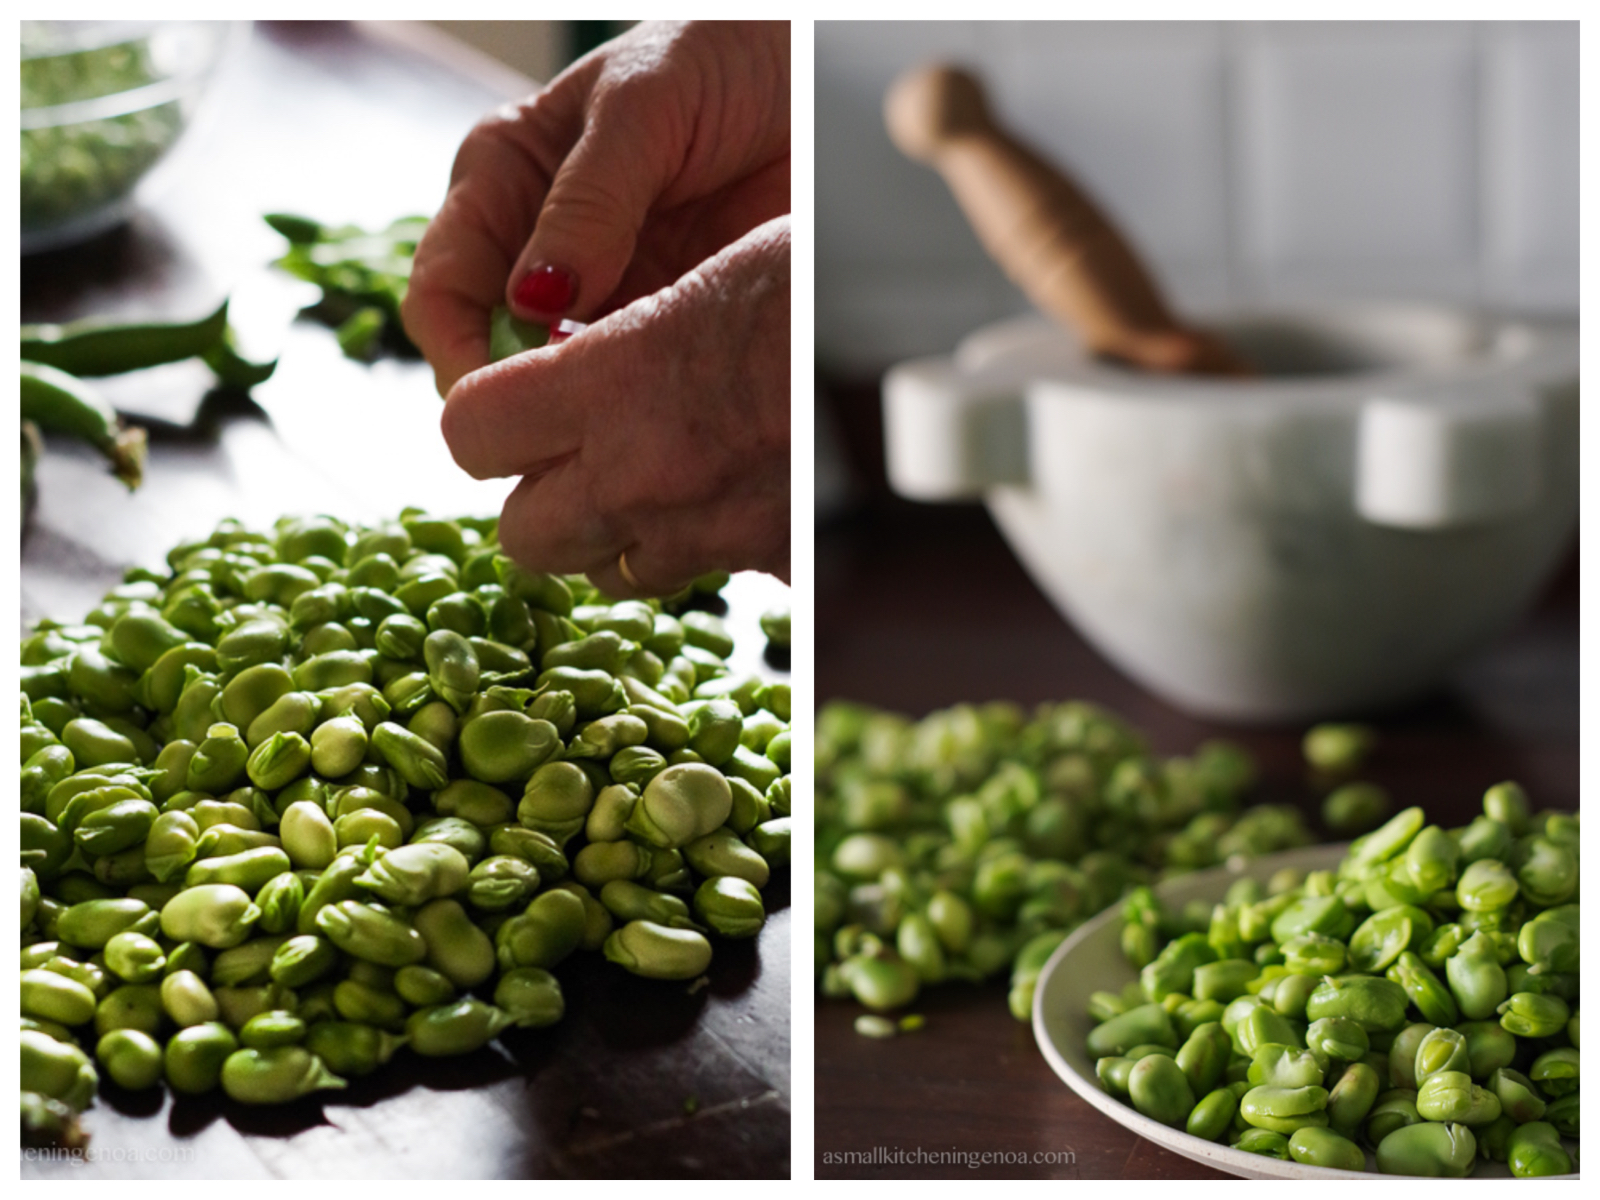 shelling fava beans fromt their pods for the fava beans pesto in the mortar